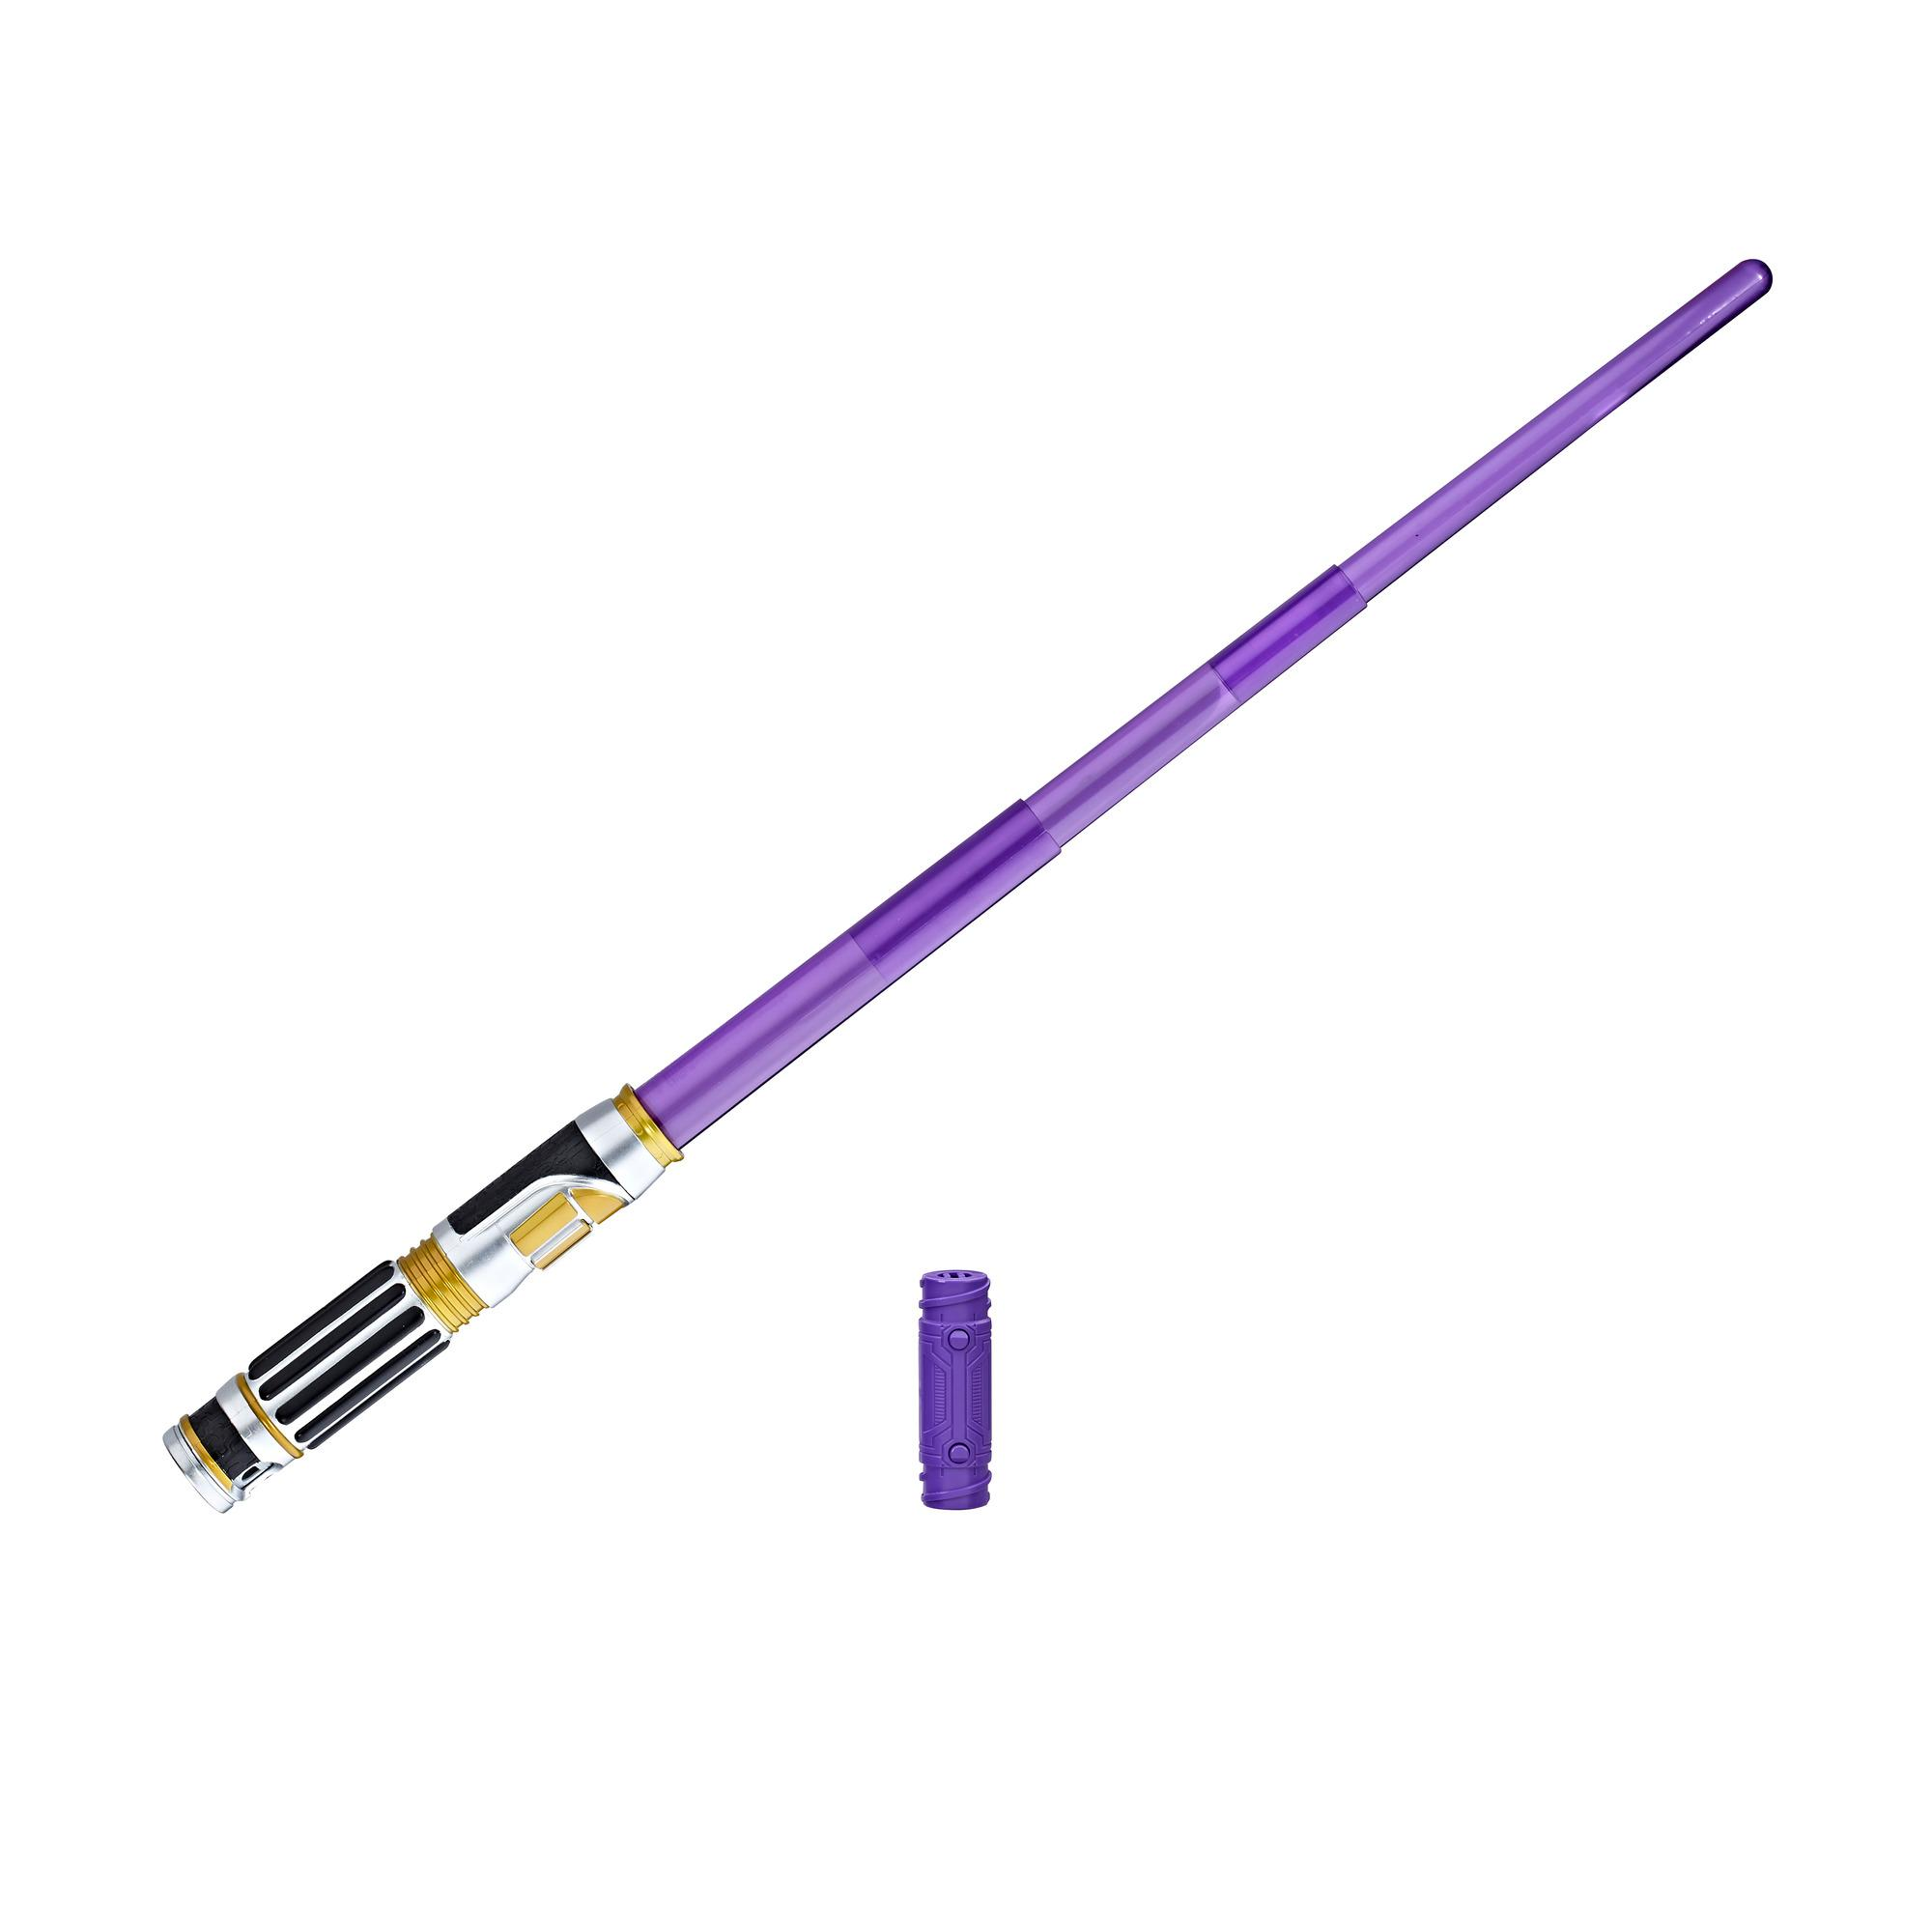 STAR WARS EPISODIO 8 SABLE ELECTRONICO EPISODIO 3 MACE WINDU